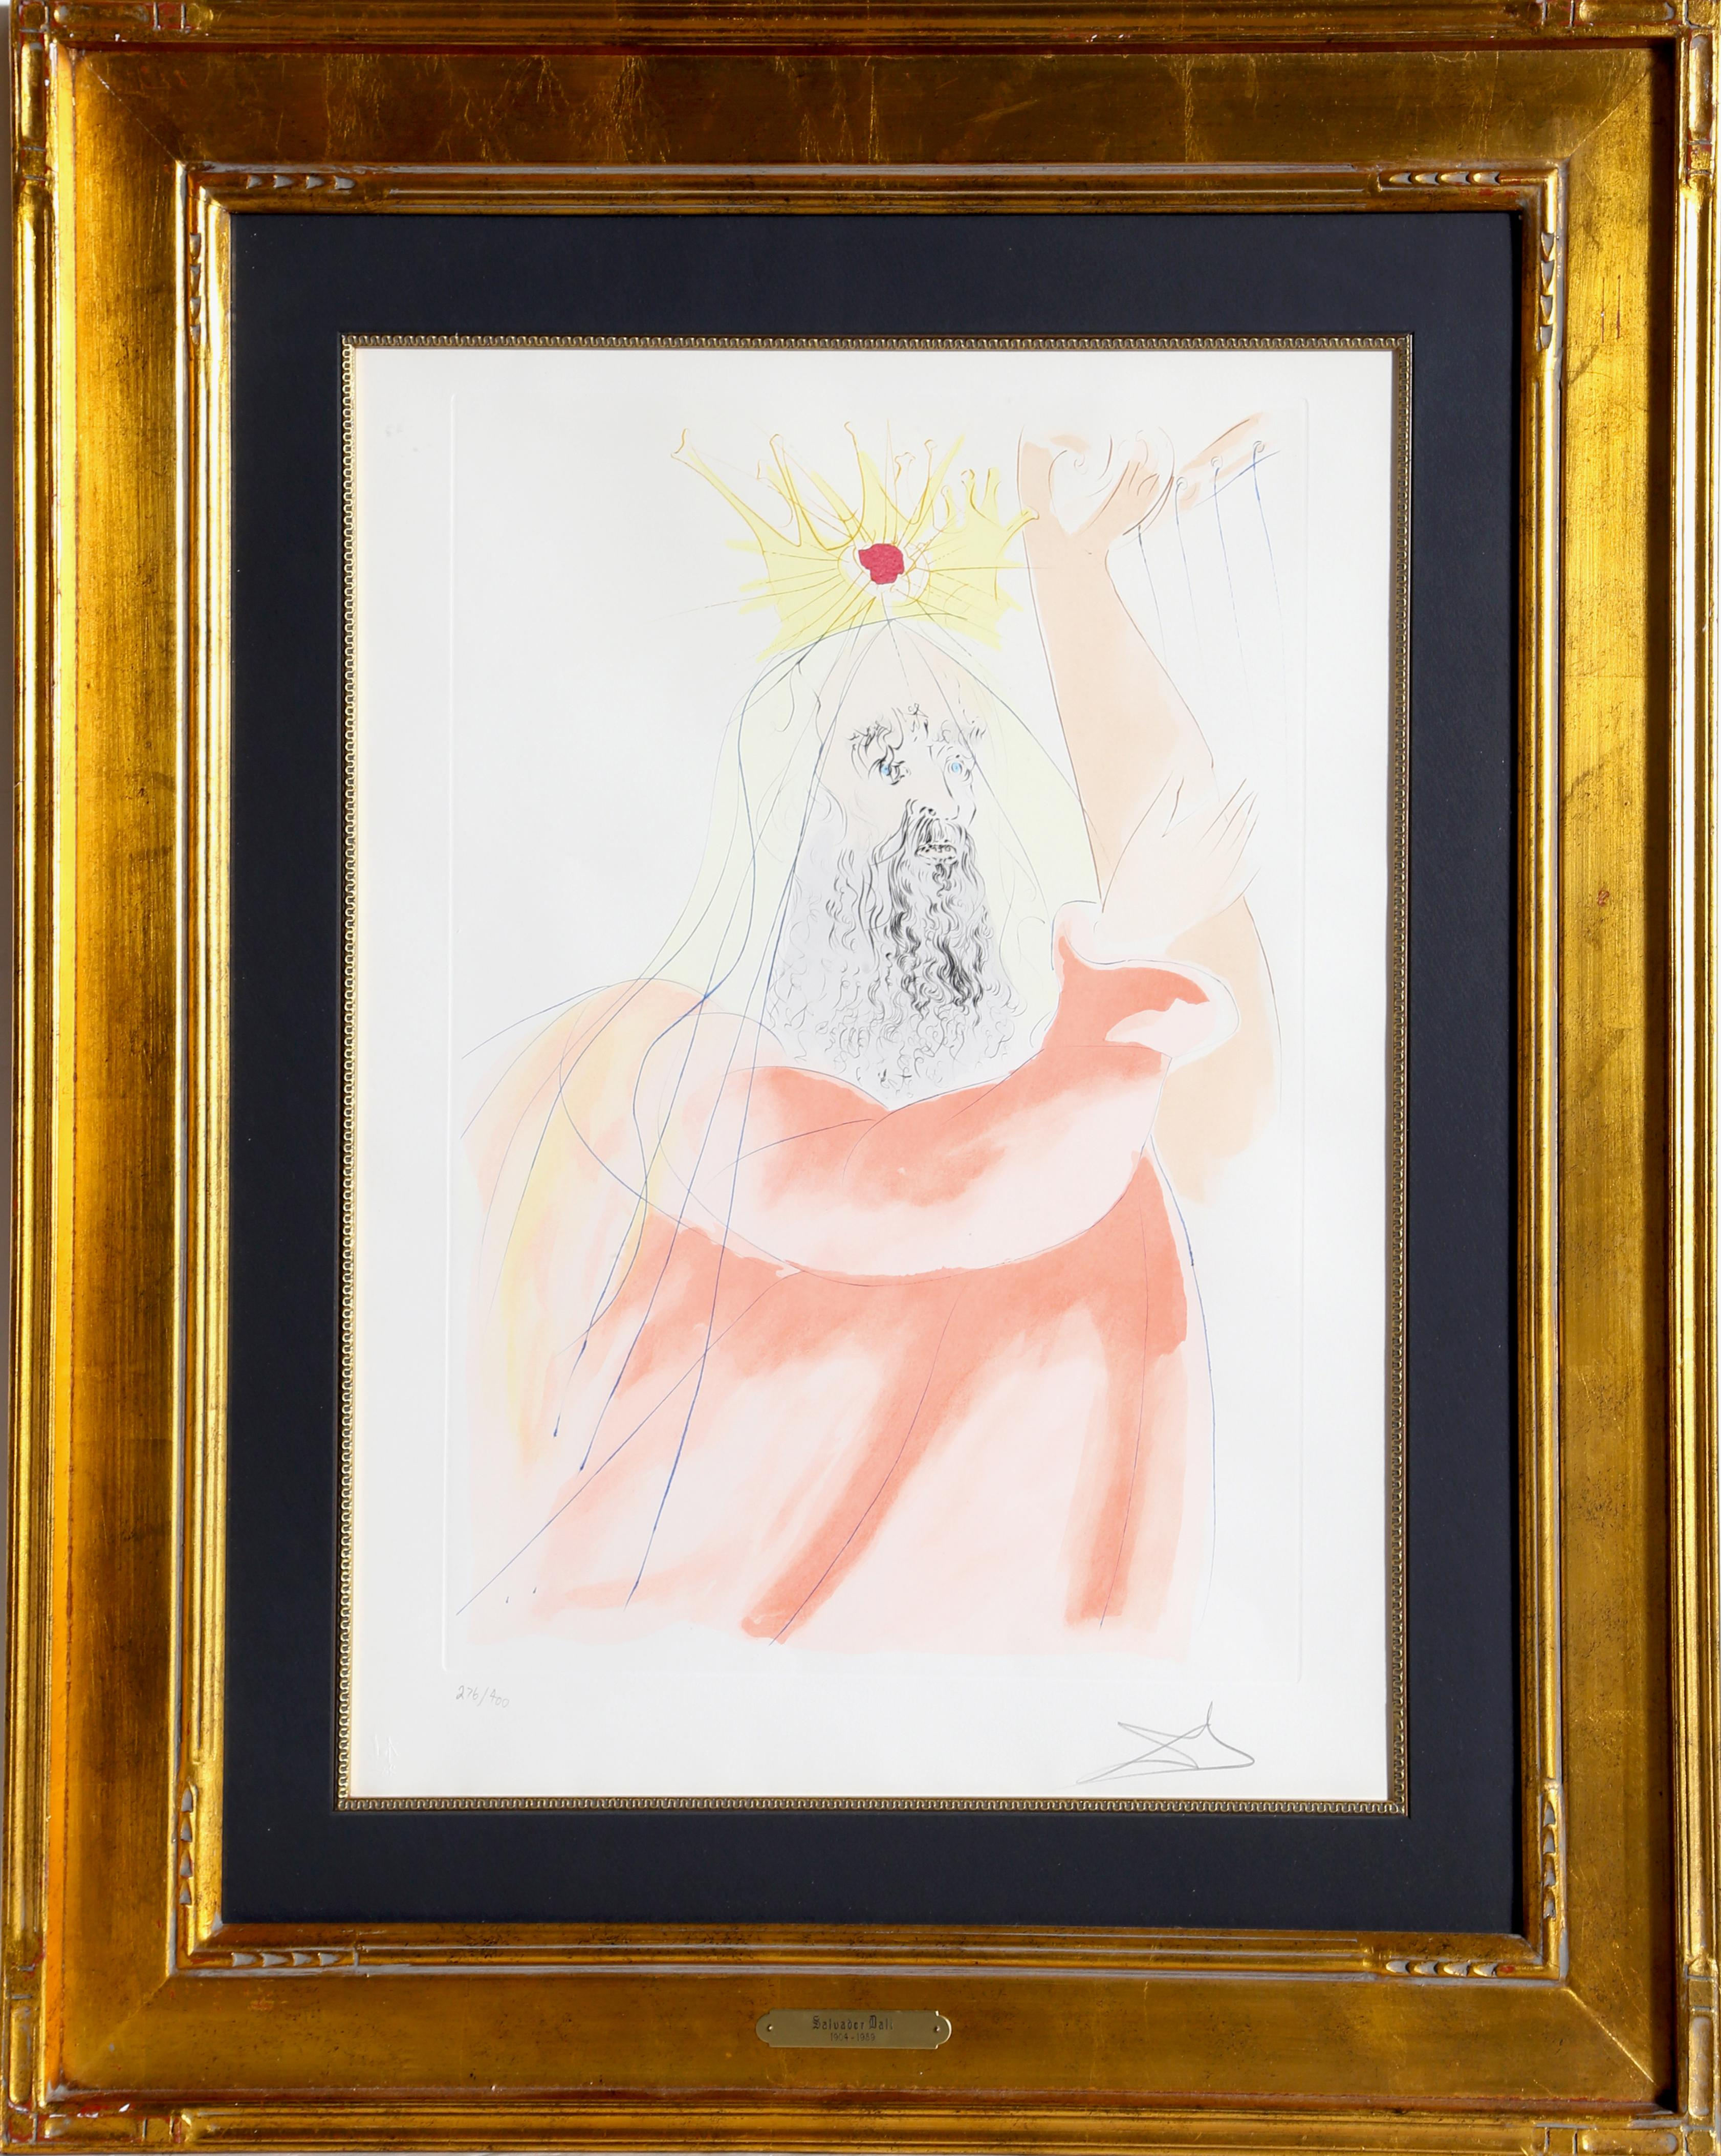 King David from our Historical Heritage Suite by Salvador Dali